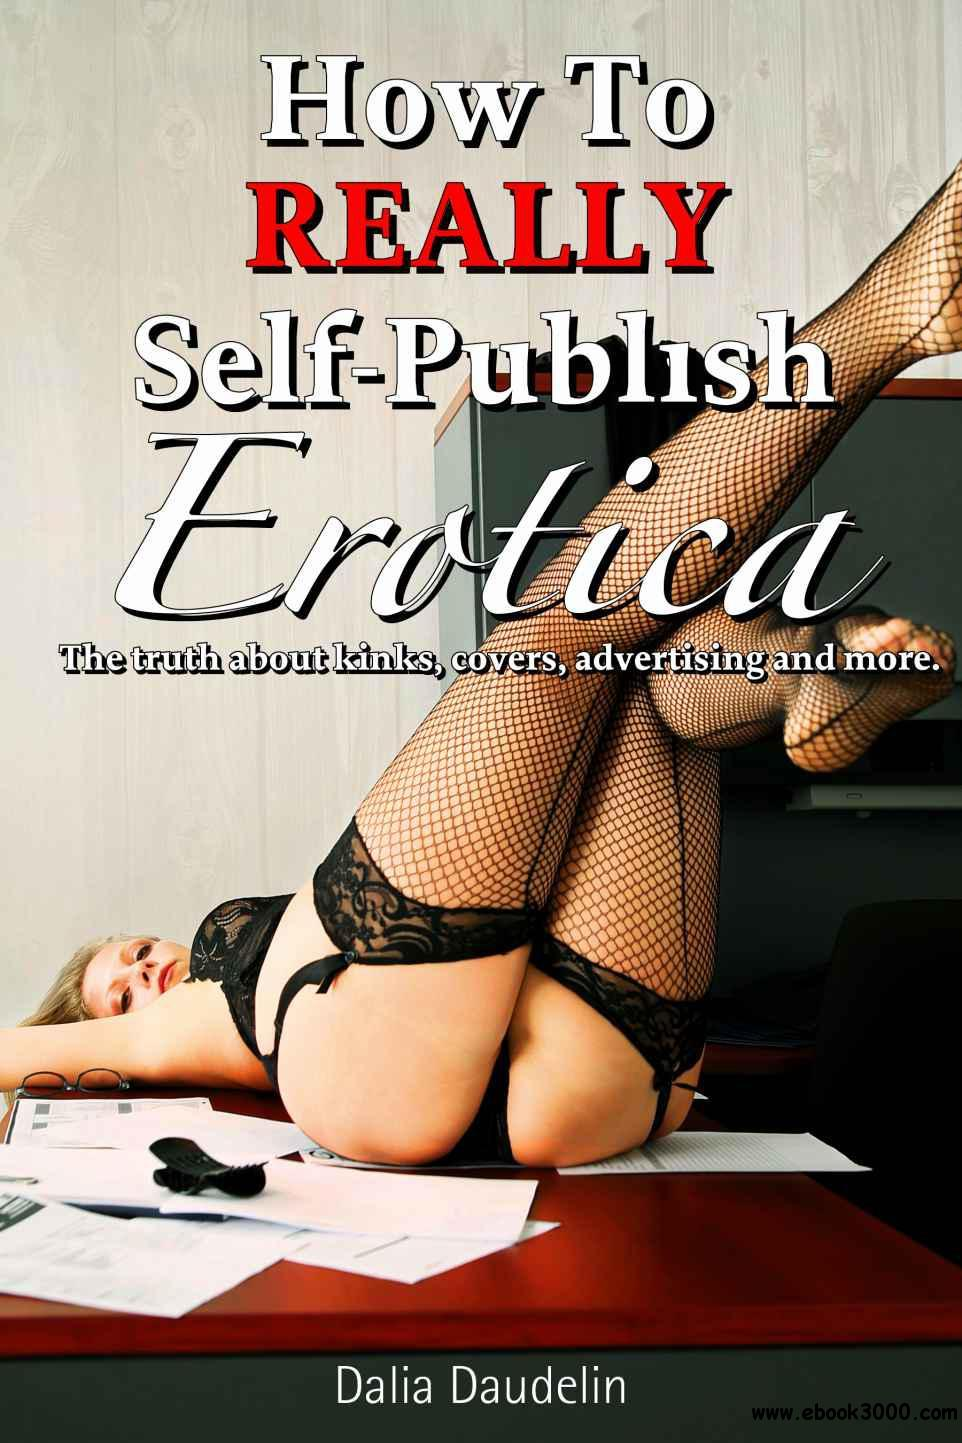 How to Really Self-Publish Erotica: The Truth About Kinks, Covers, Advertising and More! free download